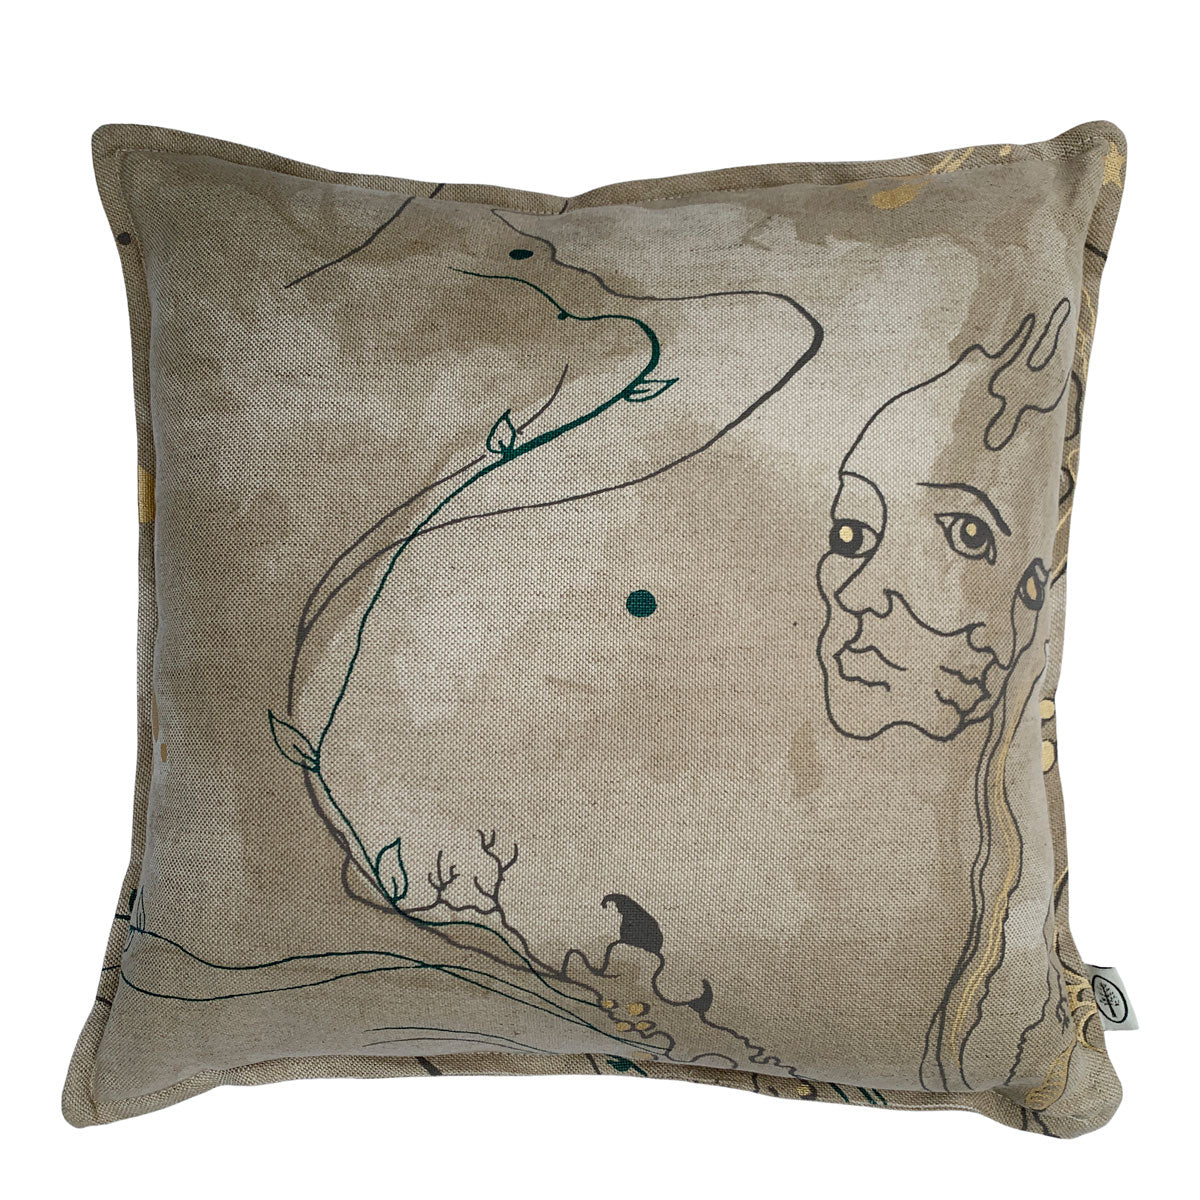 Large Metamorphosis Linen Union Cushion